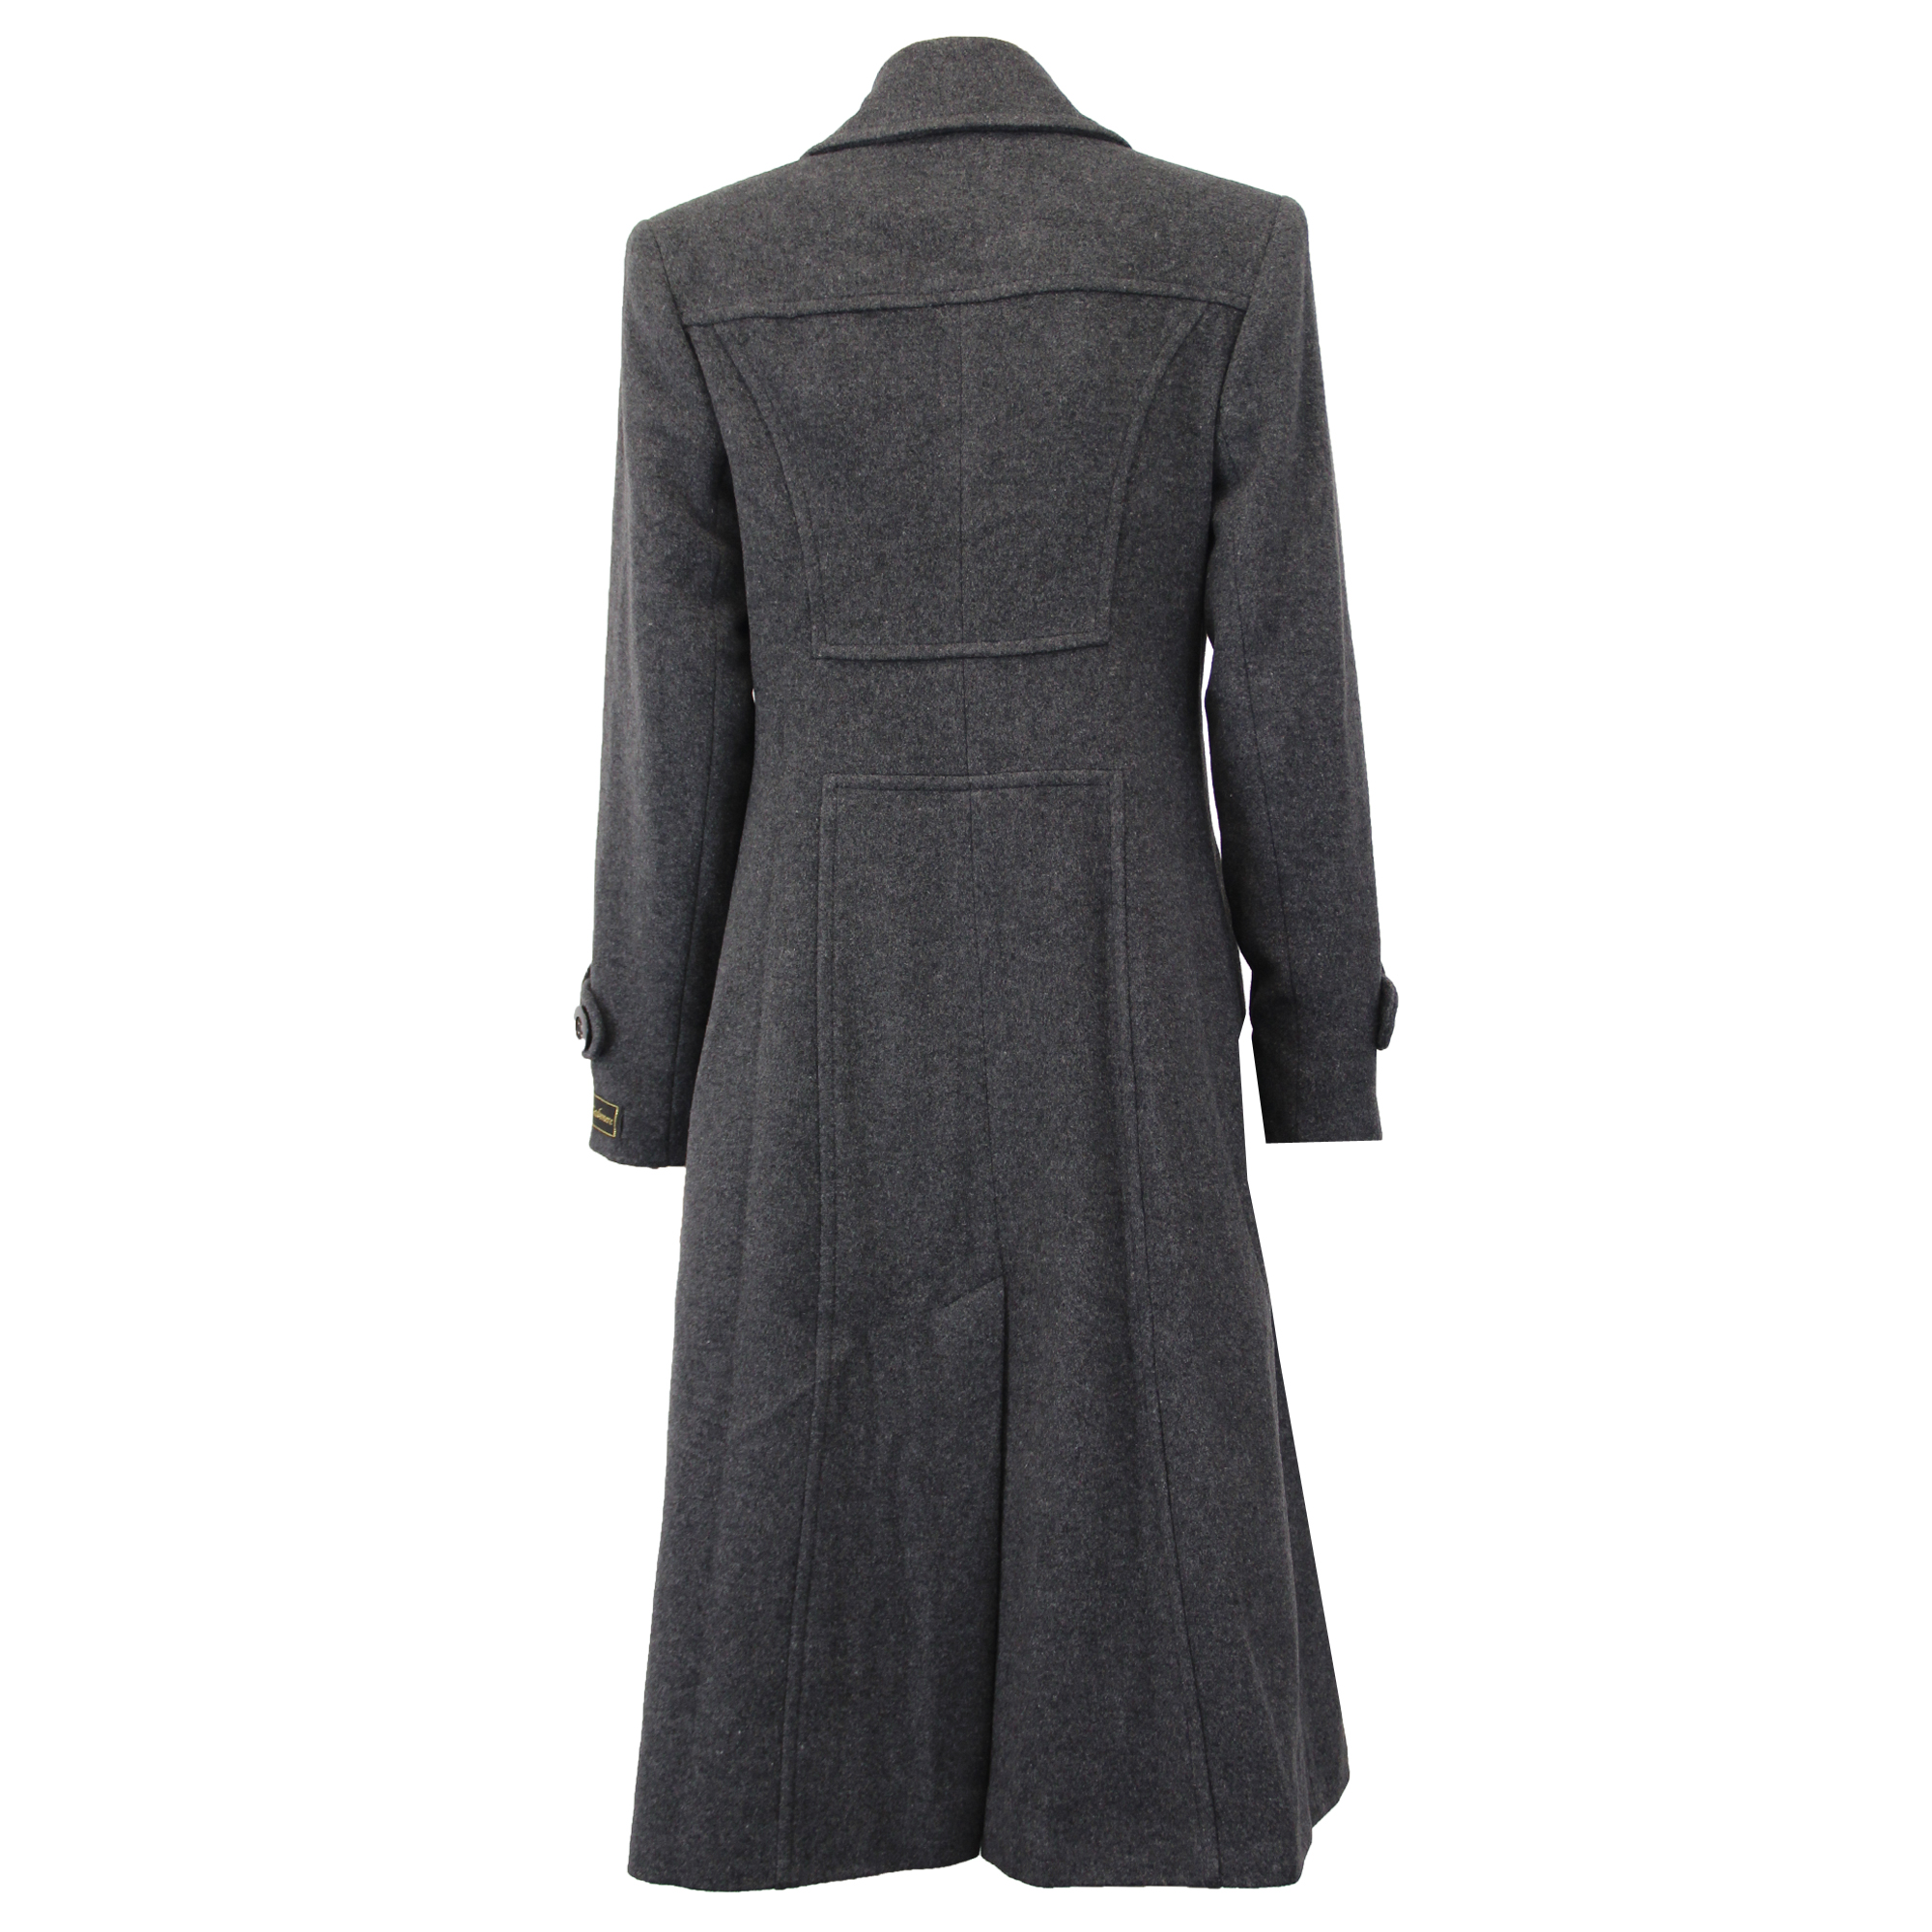 Ladies-Wool-Cashmere-Coat-Women-Jacket-Outerwear-Trench-Overcoat-Winter-Lined thumbnail 49